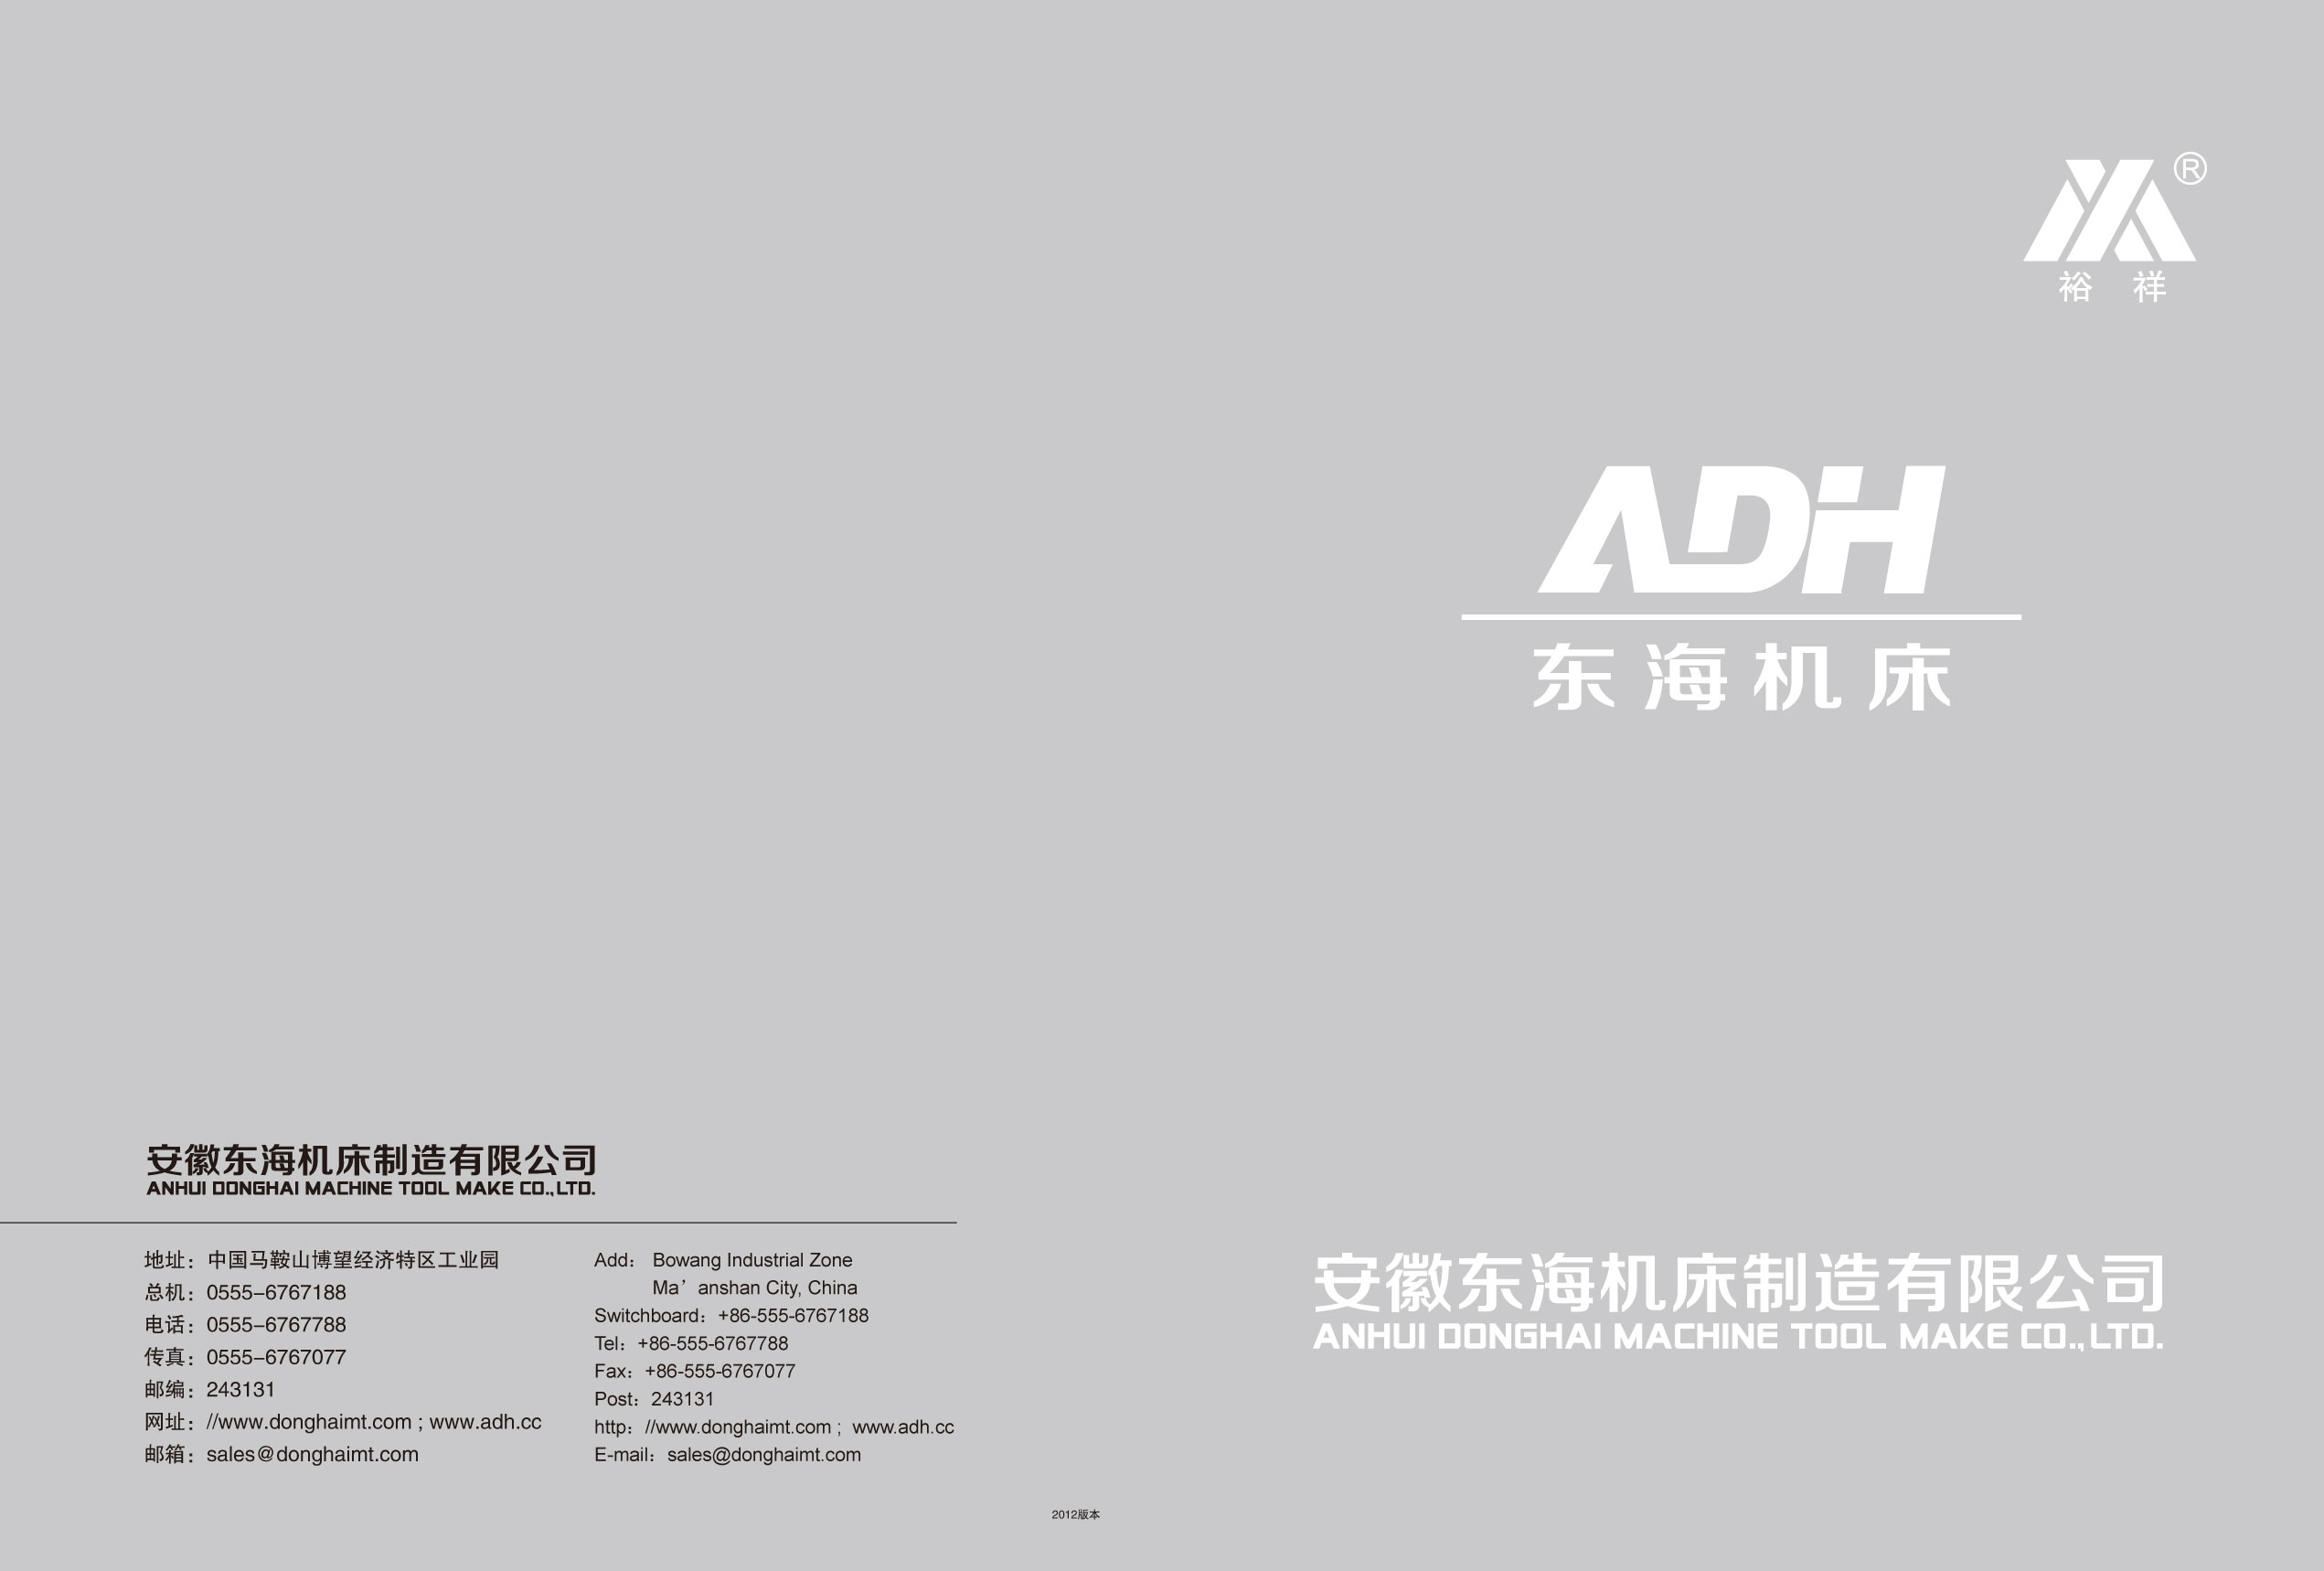 Anhui Donghai Machine Tool Make Co.